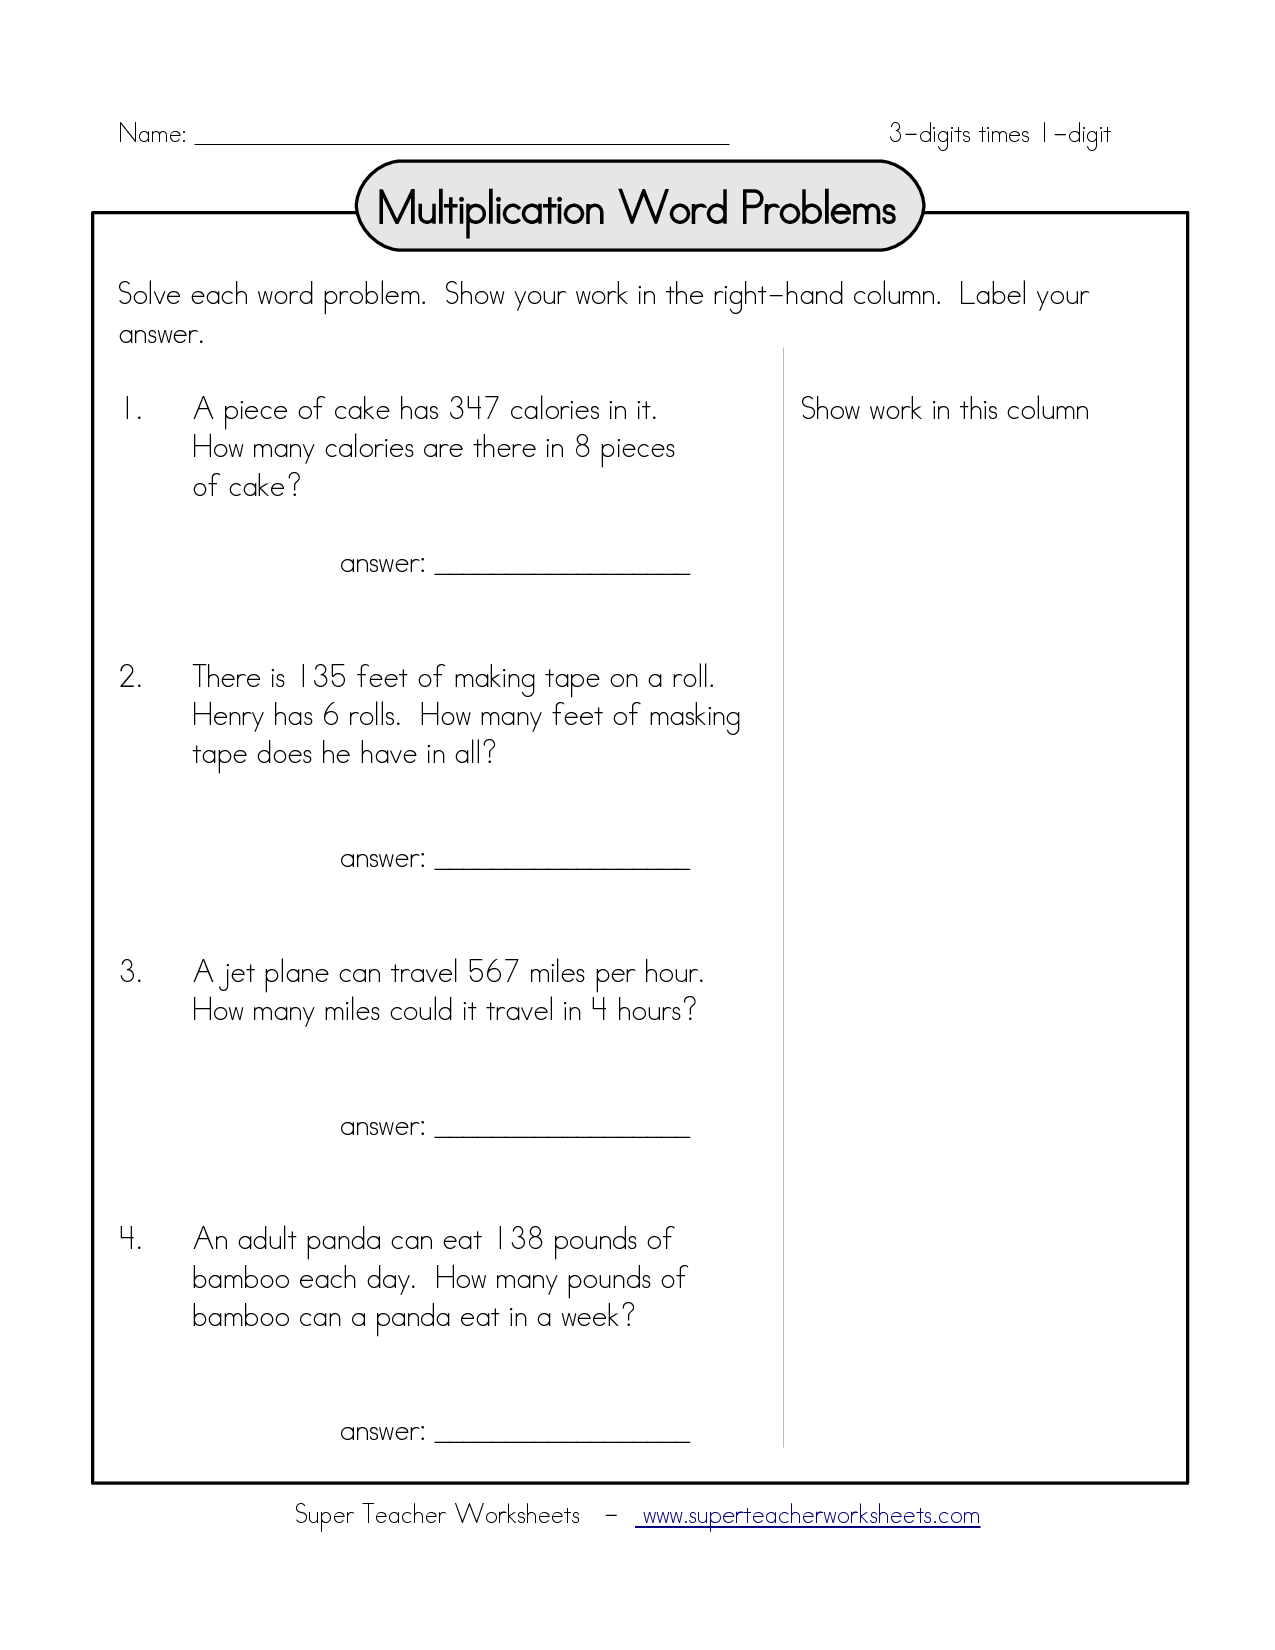 14 Best Images Of Worksheets Multiplication Word Problems